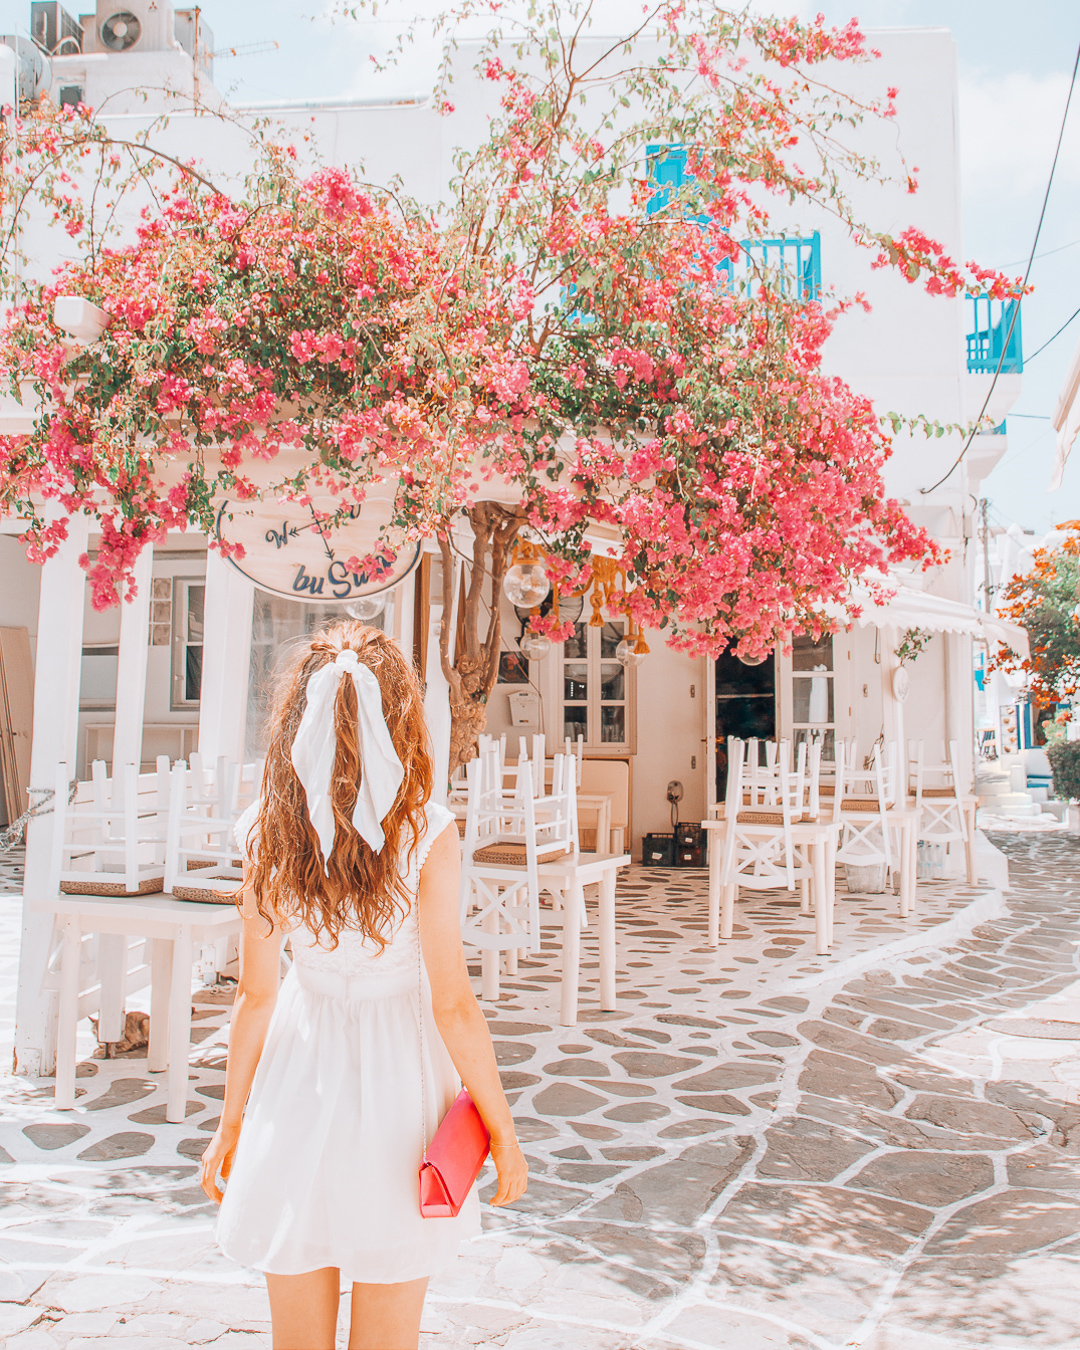 Girl walking in a street with flowers